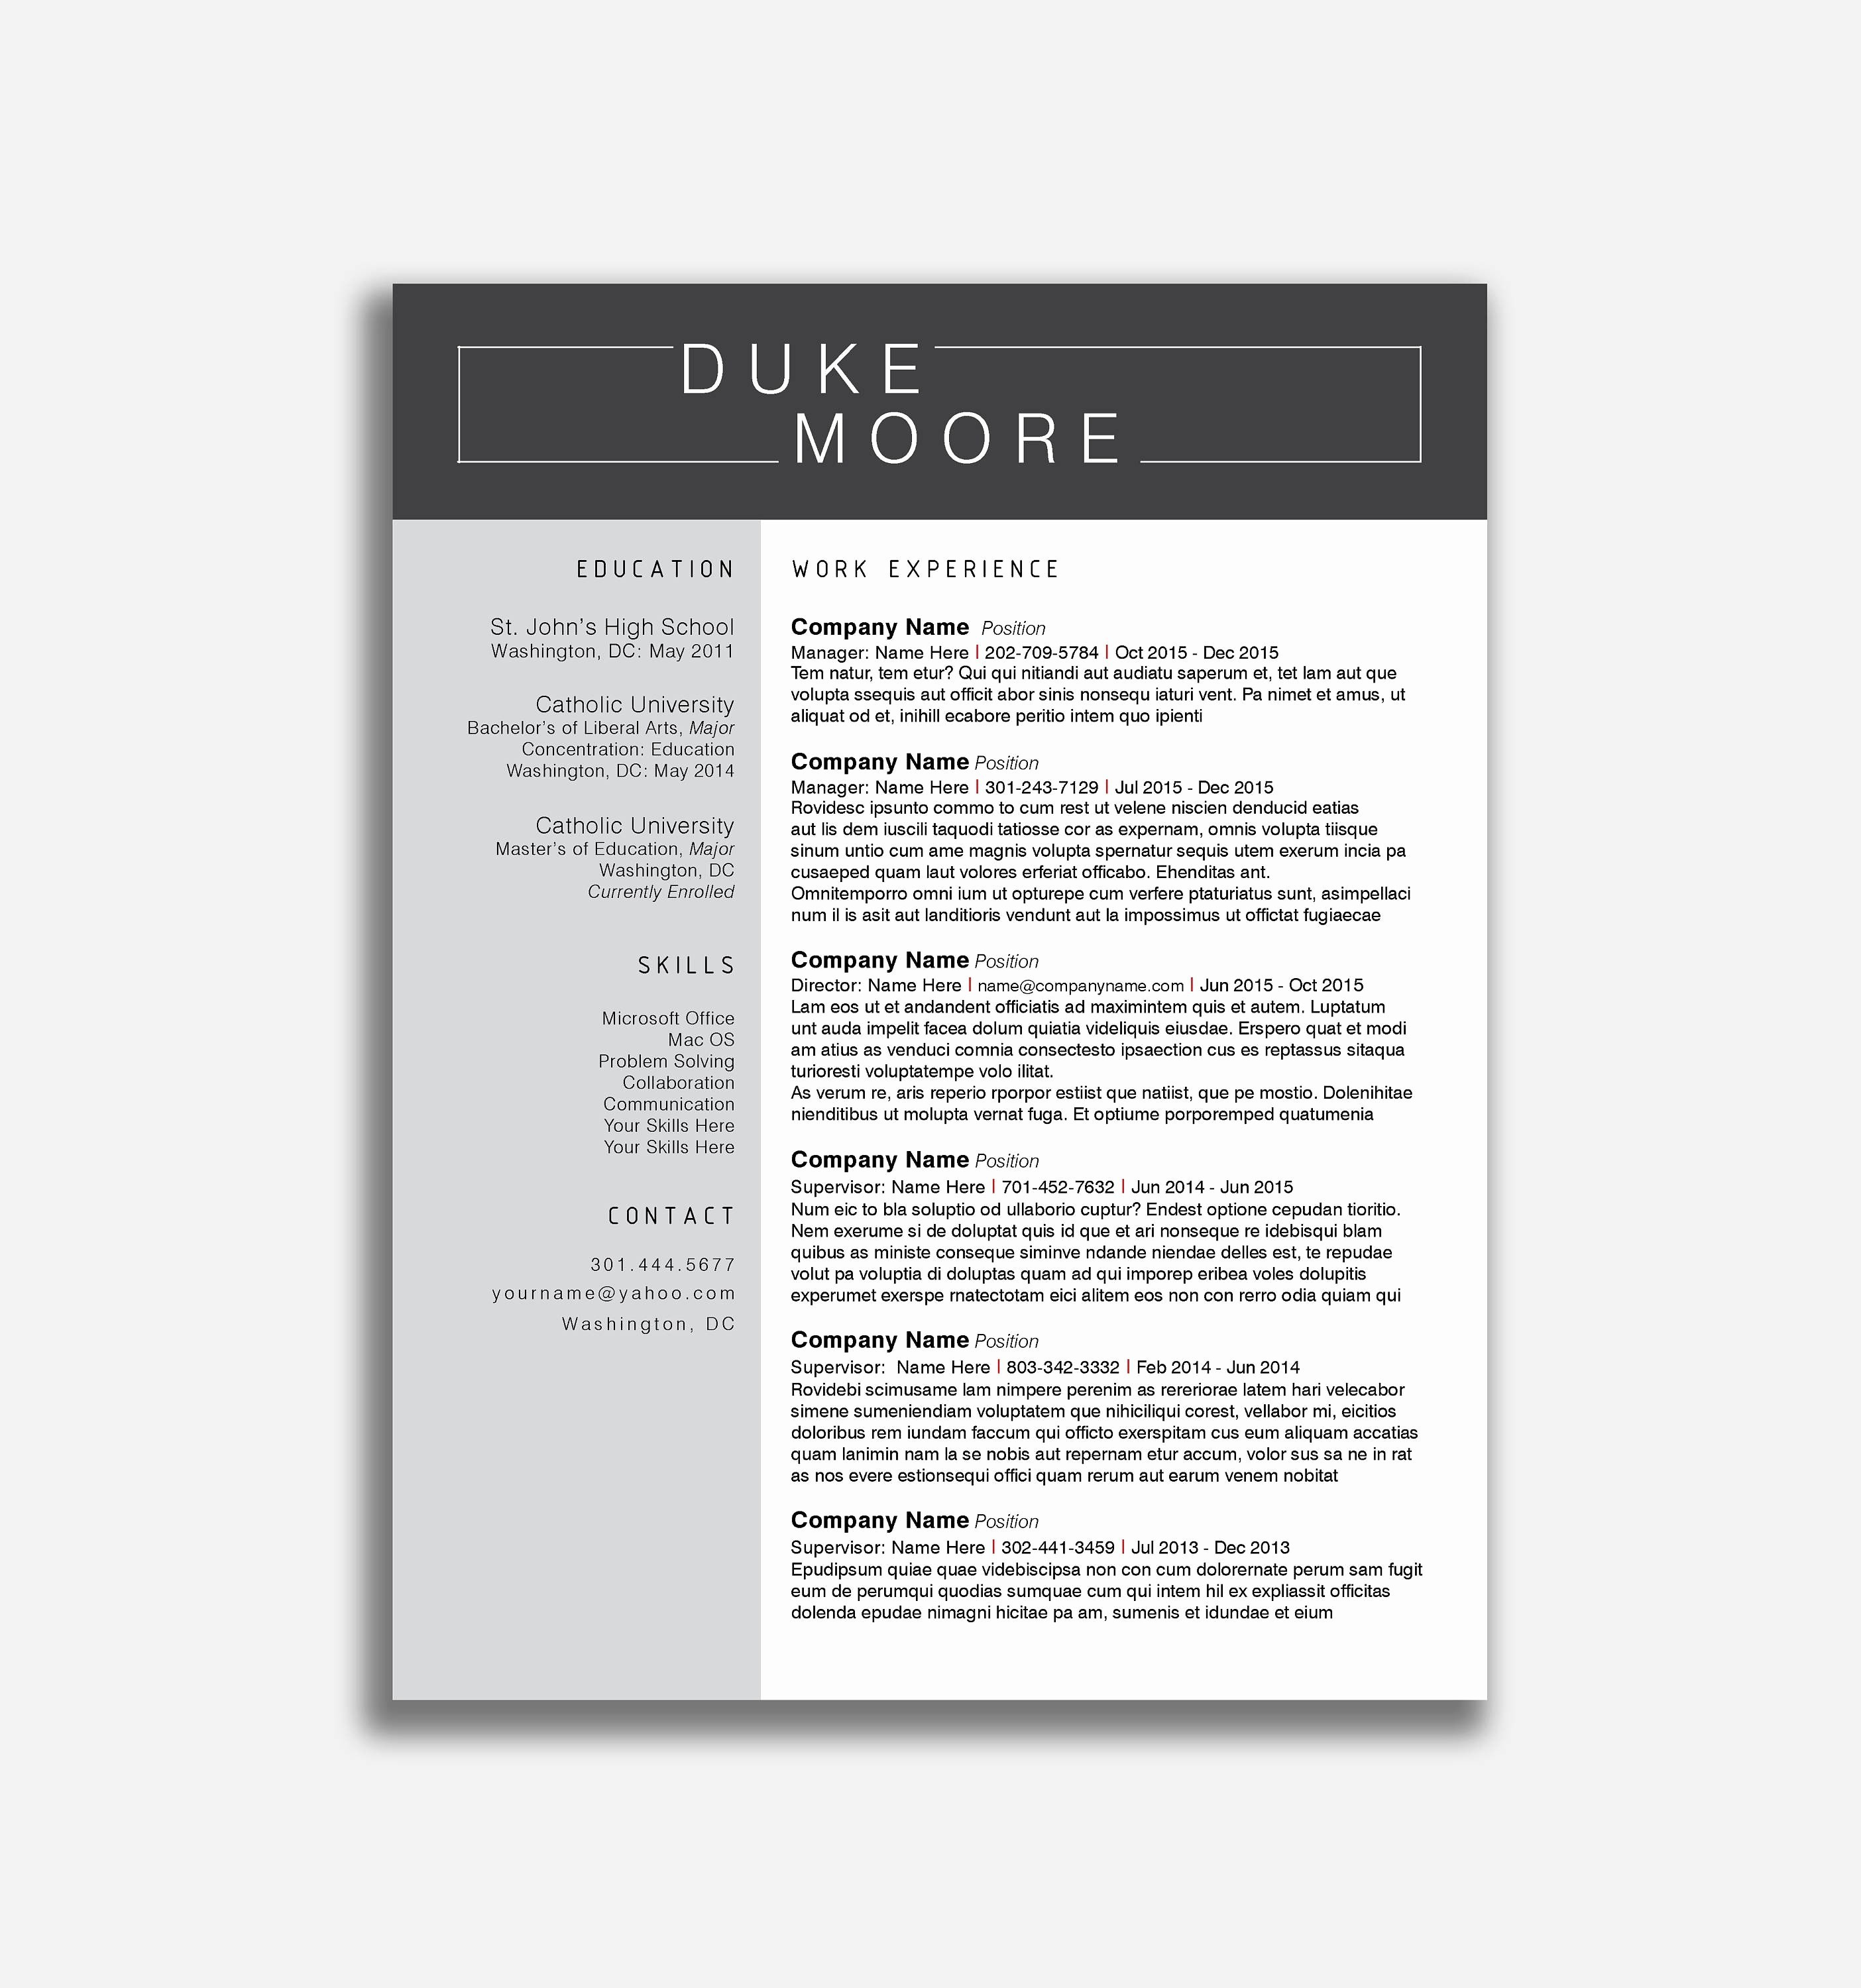 Resume Templates Word Free Download - Free Blank Resume Templates Download List Templates Word Free